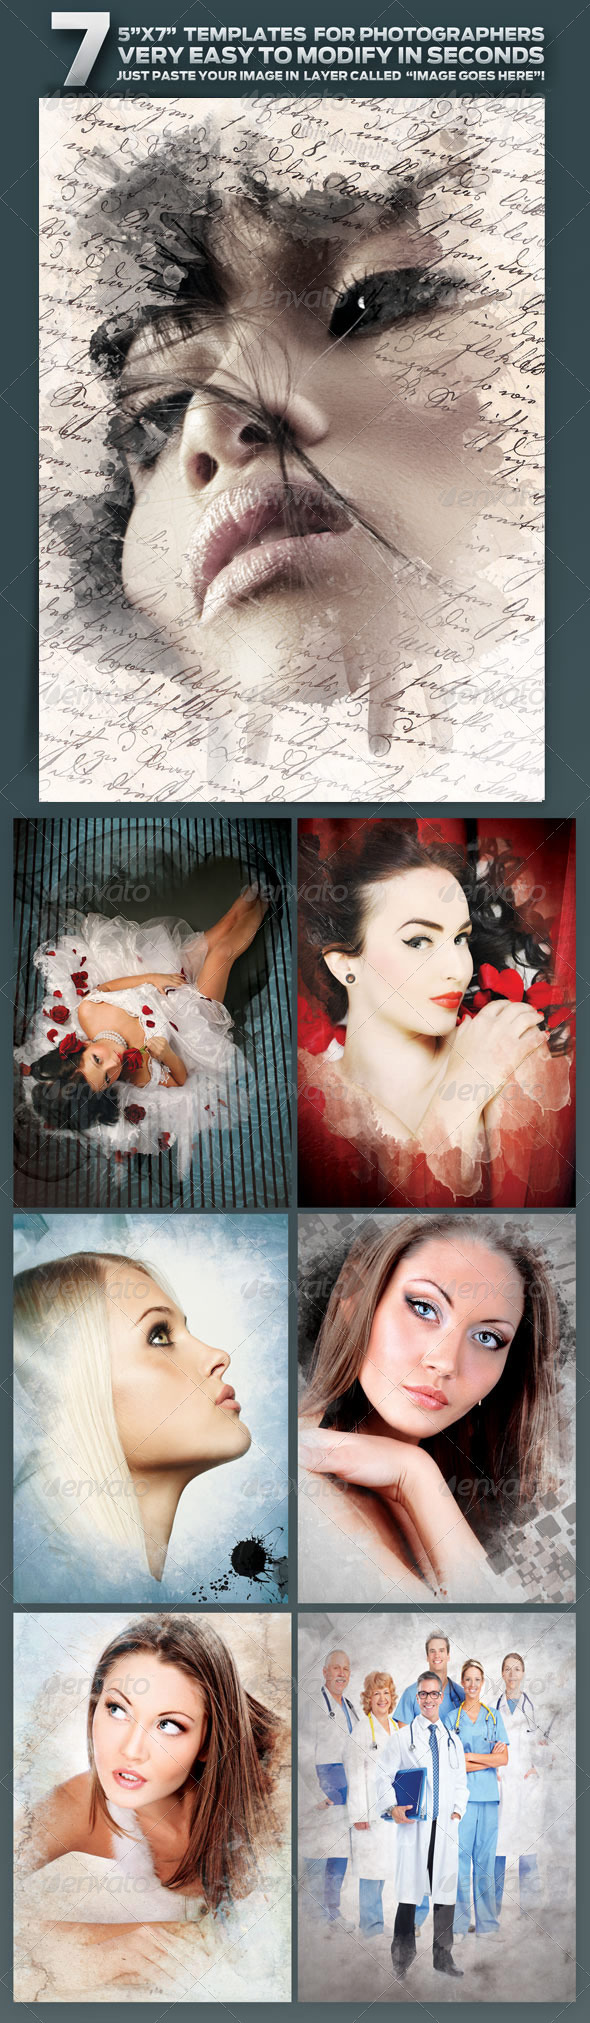 GraphicRiver 7 Seven 5 x7 Frame Templates for Photographers 1718728